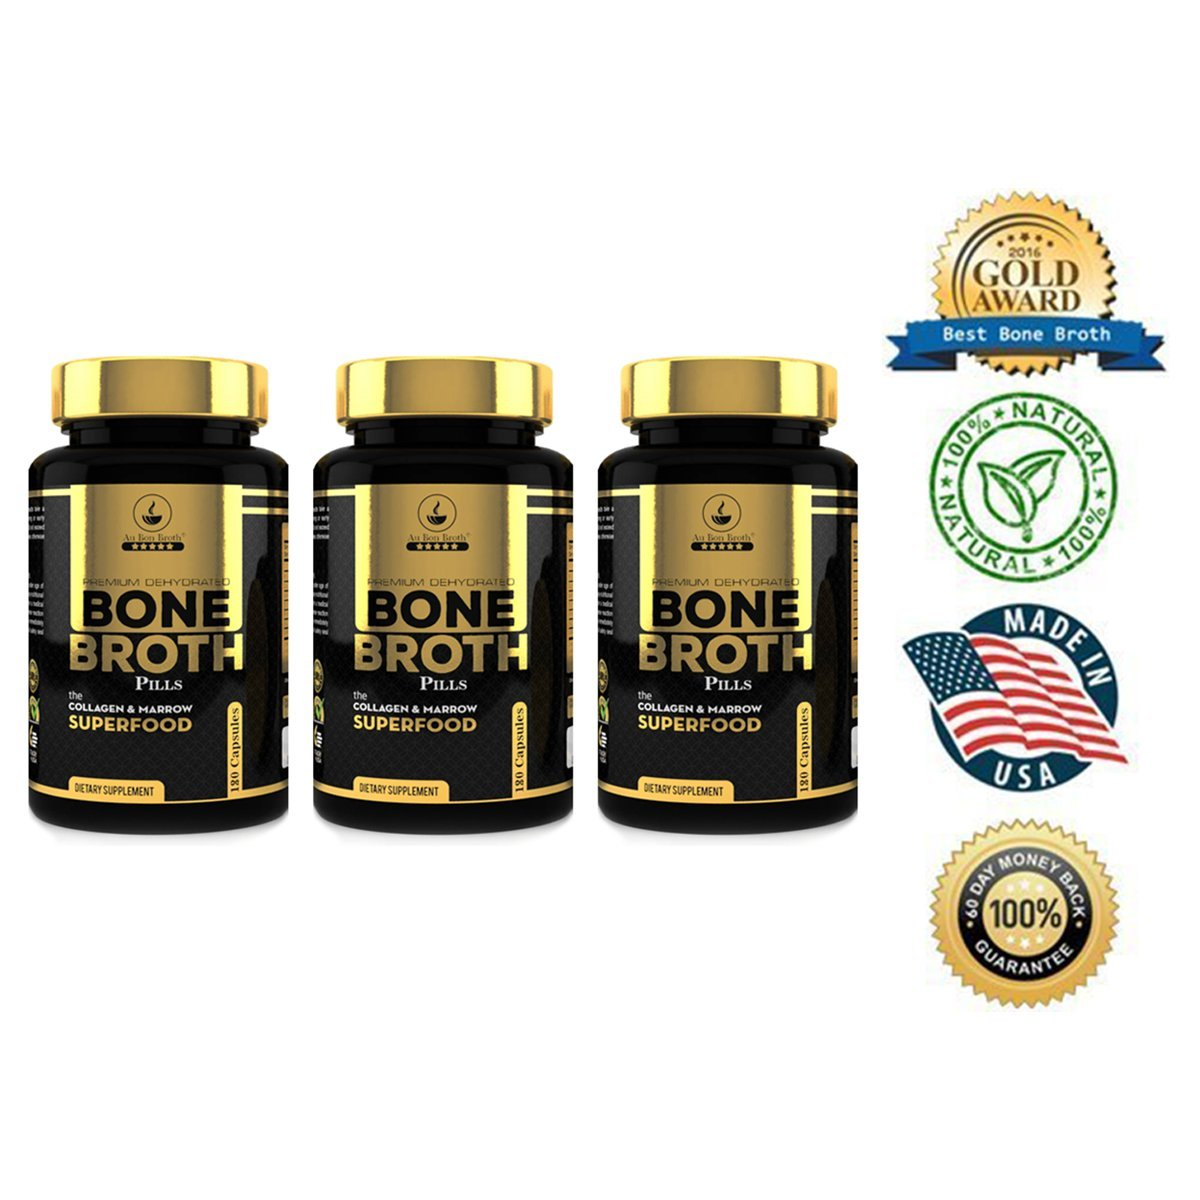 Bone Broth Protein Powder Superfood Capsules - Organic Dehydrated Grassfed Beef + Chicken Powder Blend Pills - Non-GMO - Great Source of Collagen + Bone Broth Protein (540 Capsules Total)